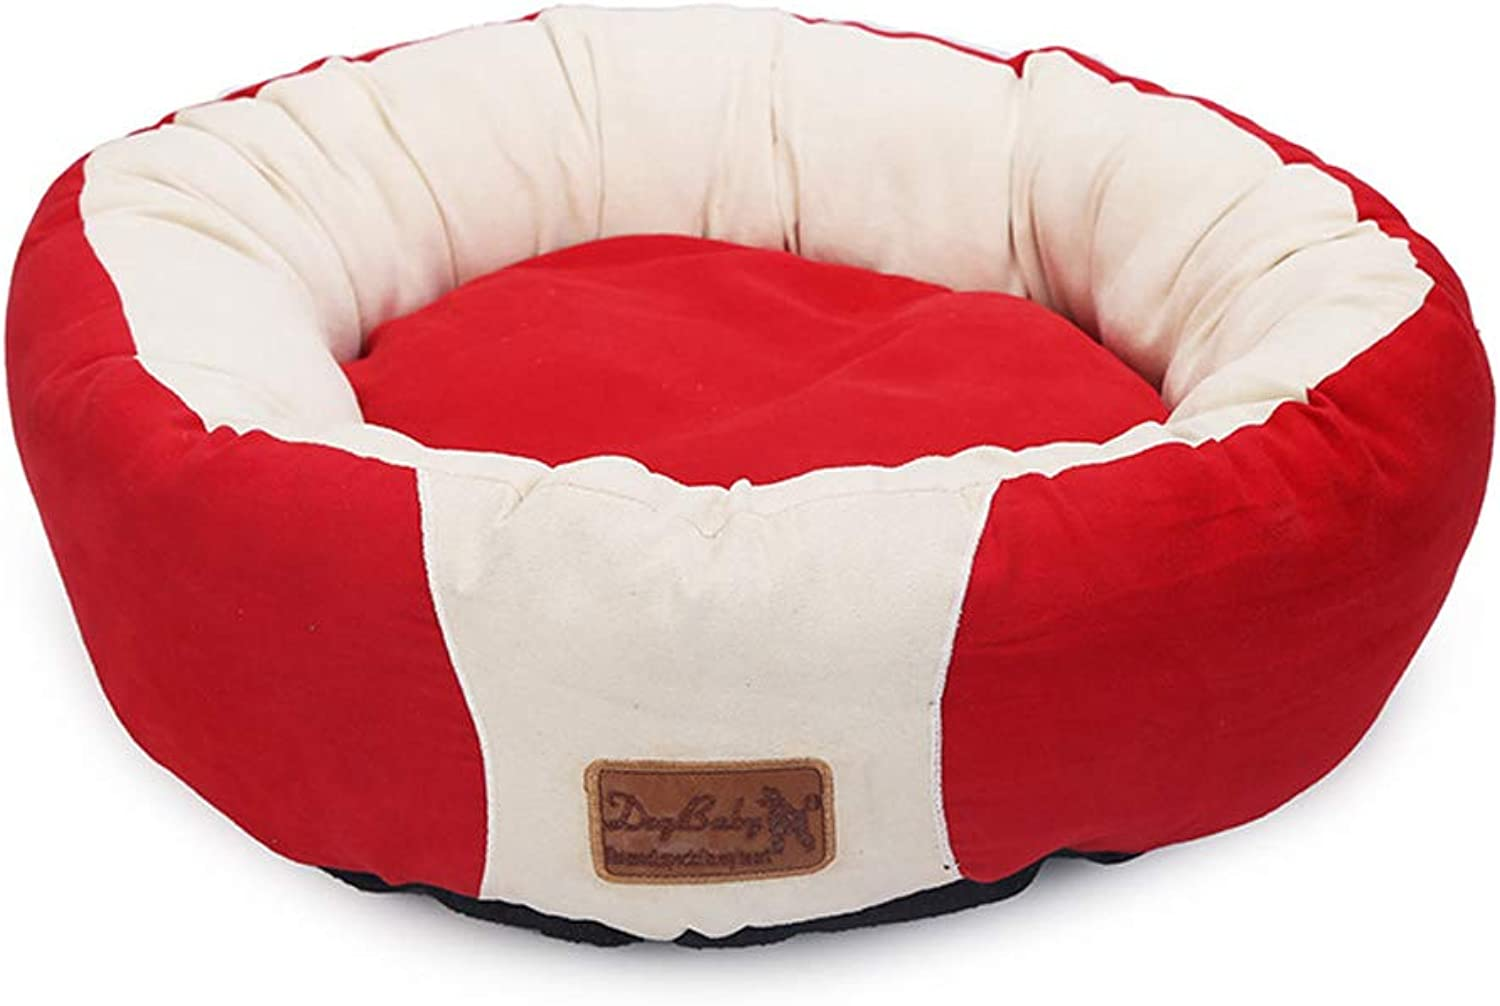 BYCWS Round Cat and Dog Cushion Bed, SelfWarming and Cozy Comfortable Cat and Dog House Bed  HighWalls for Improved Sleep